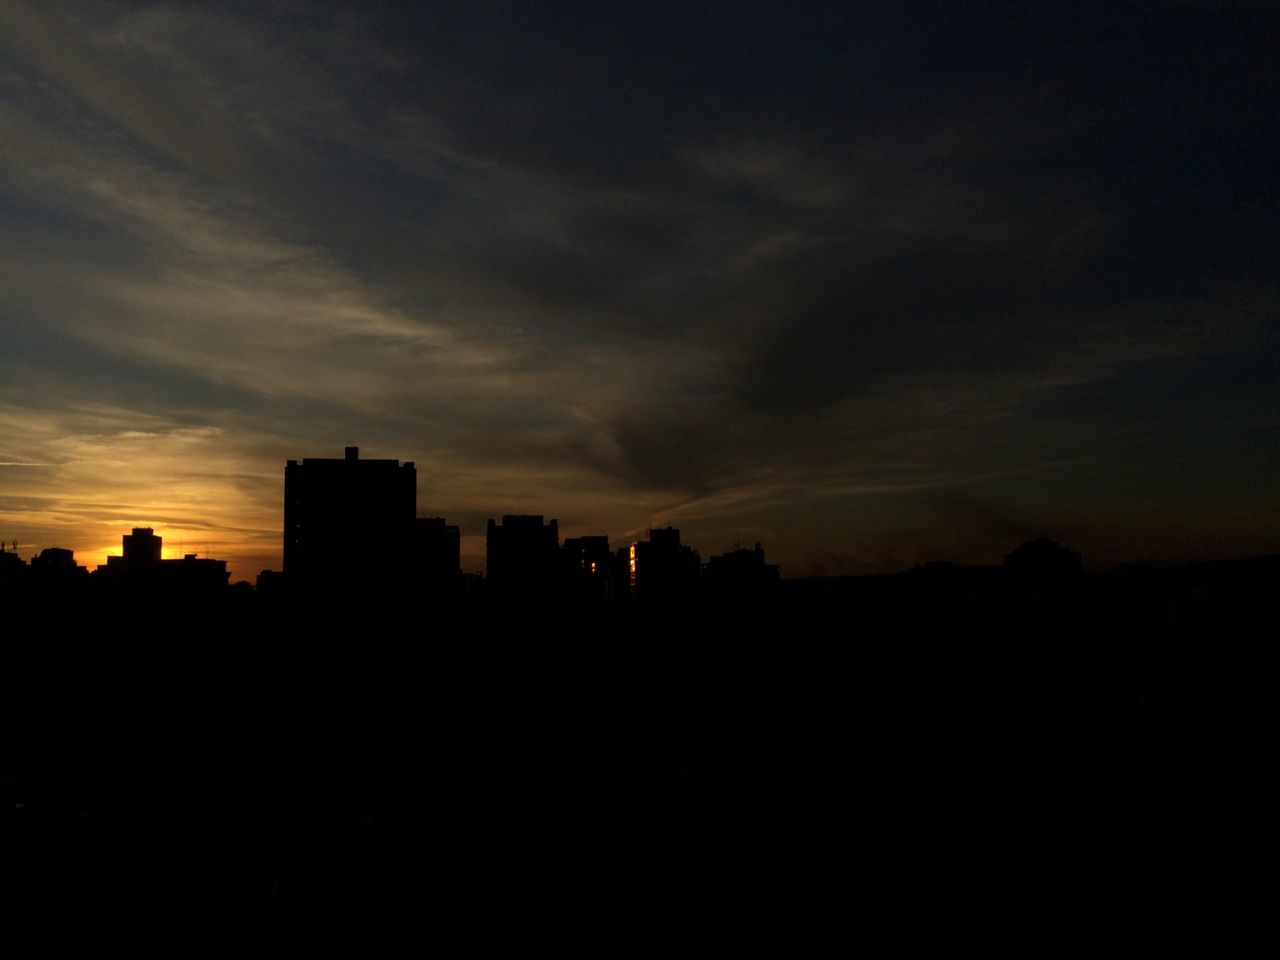 silhouette, sunset, architecture, sky, no people, building exterior, cityscape, skyscraper, city, nature, outdoors